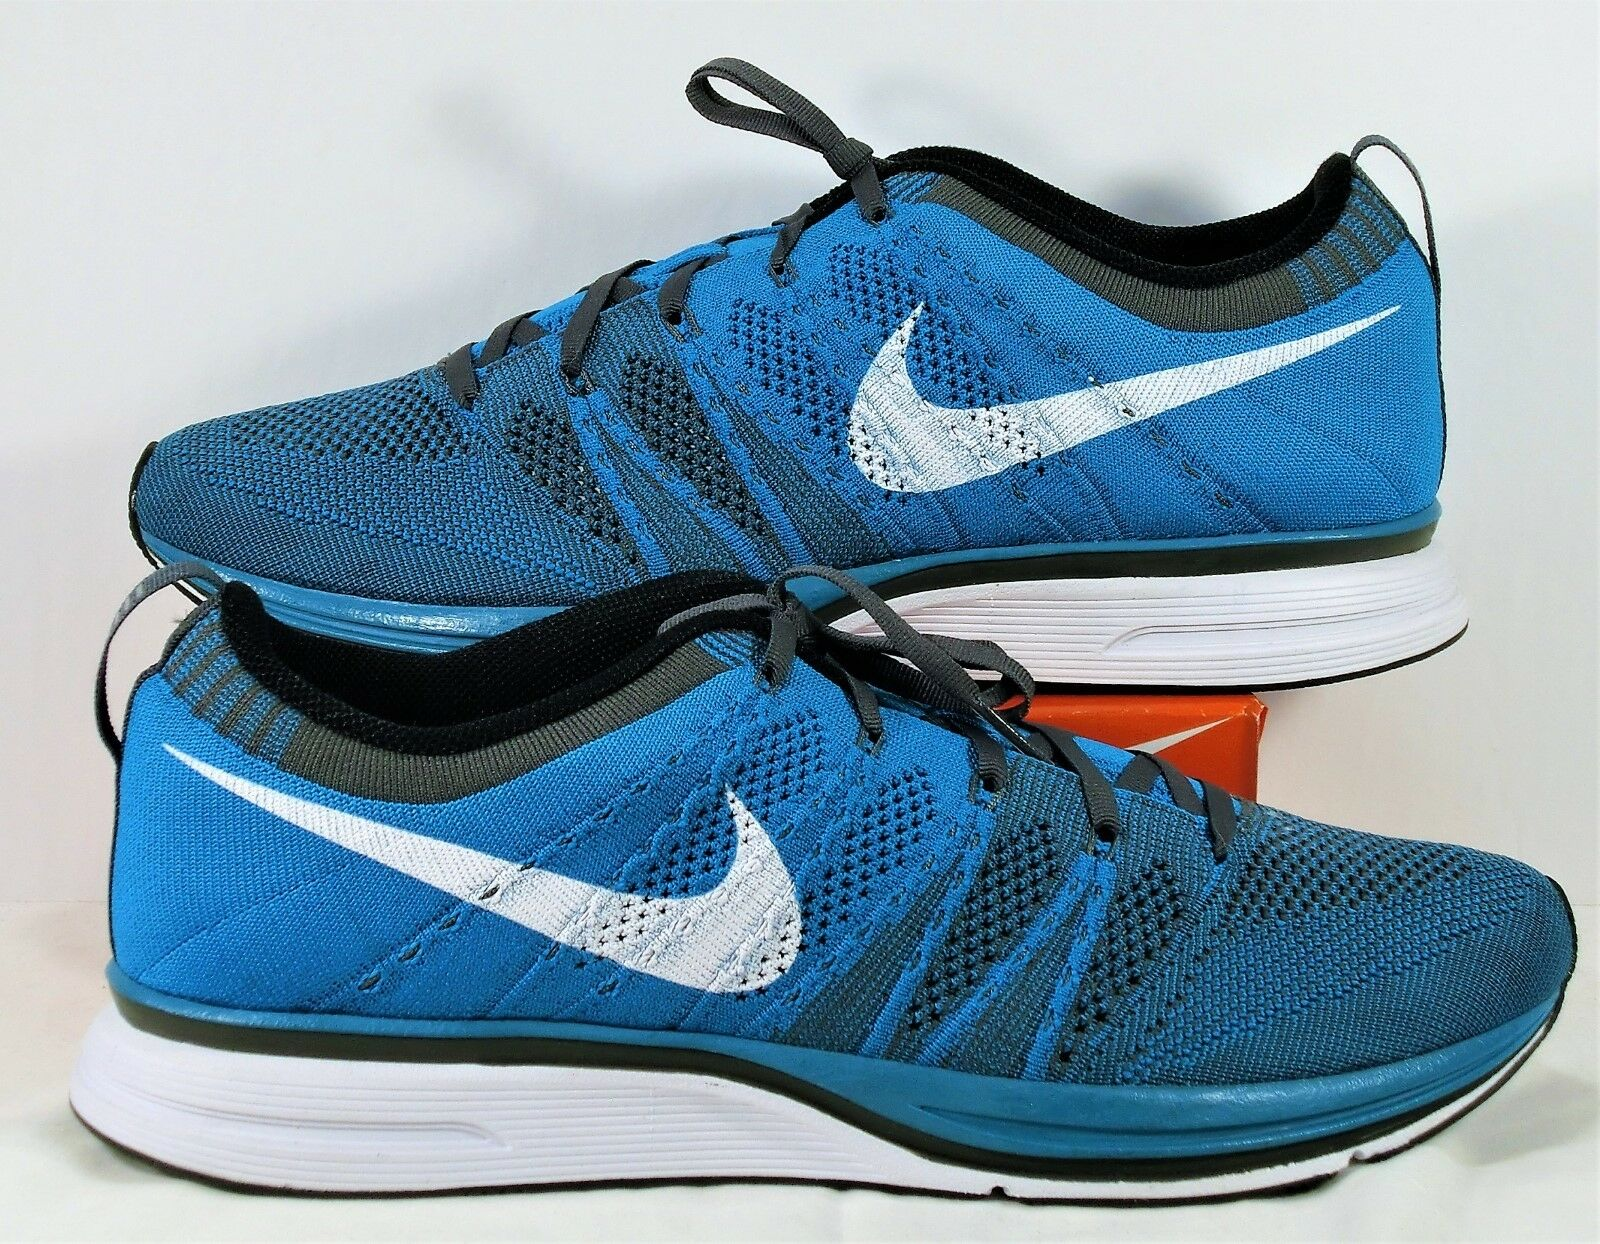 Nike Flyknit Trainer Neo Turquoise & White Womens 12 Mens Sz 10.5 NEW 532984 410